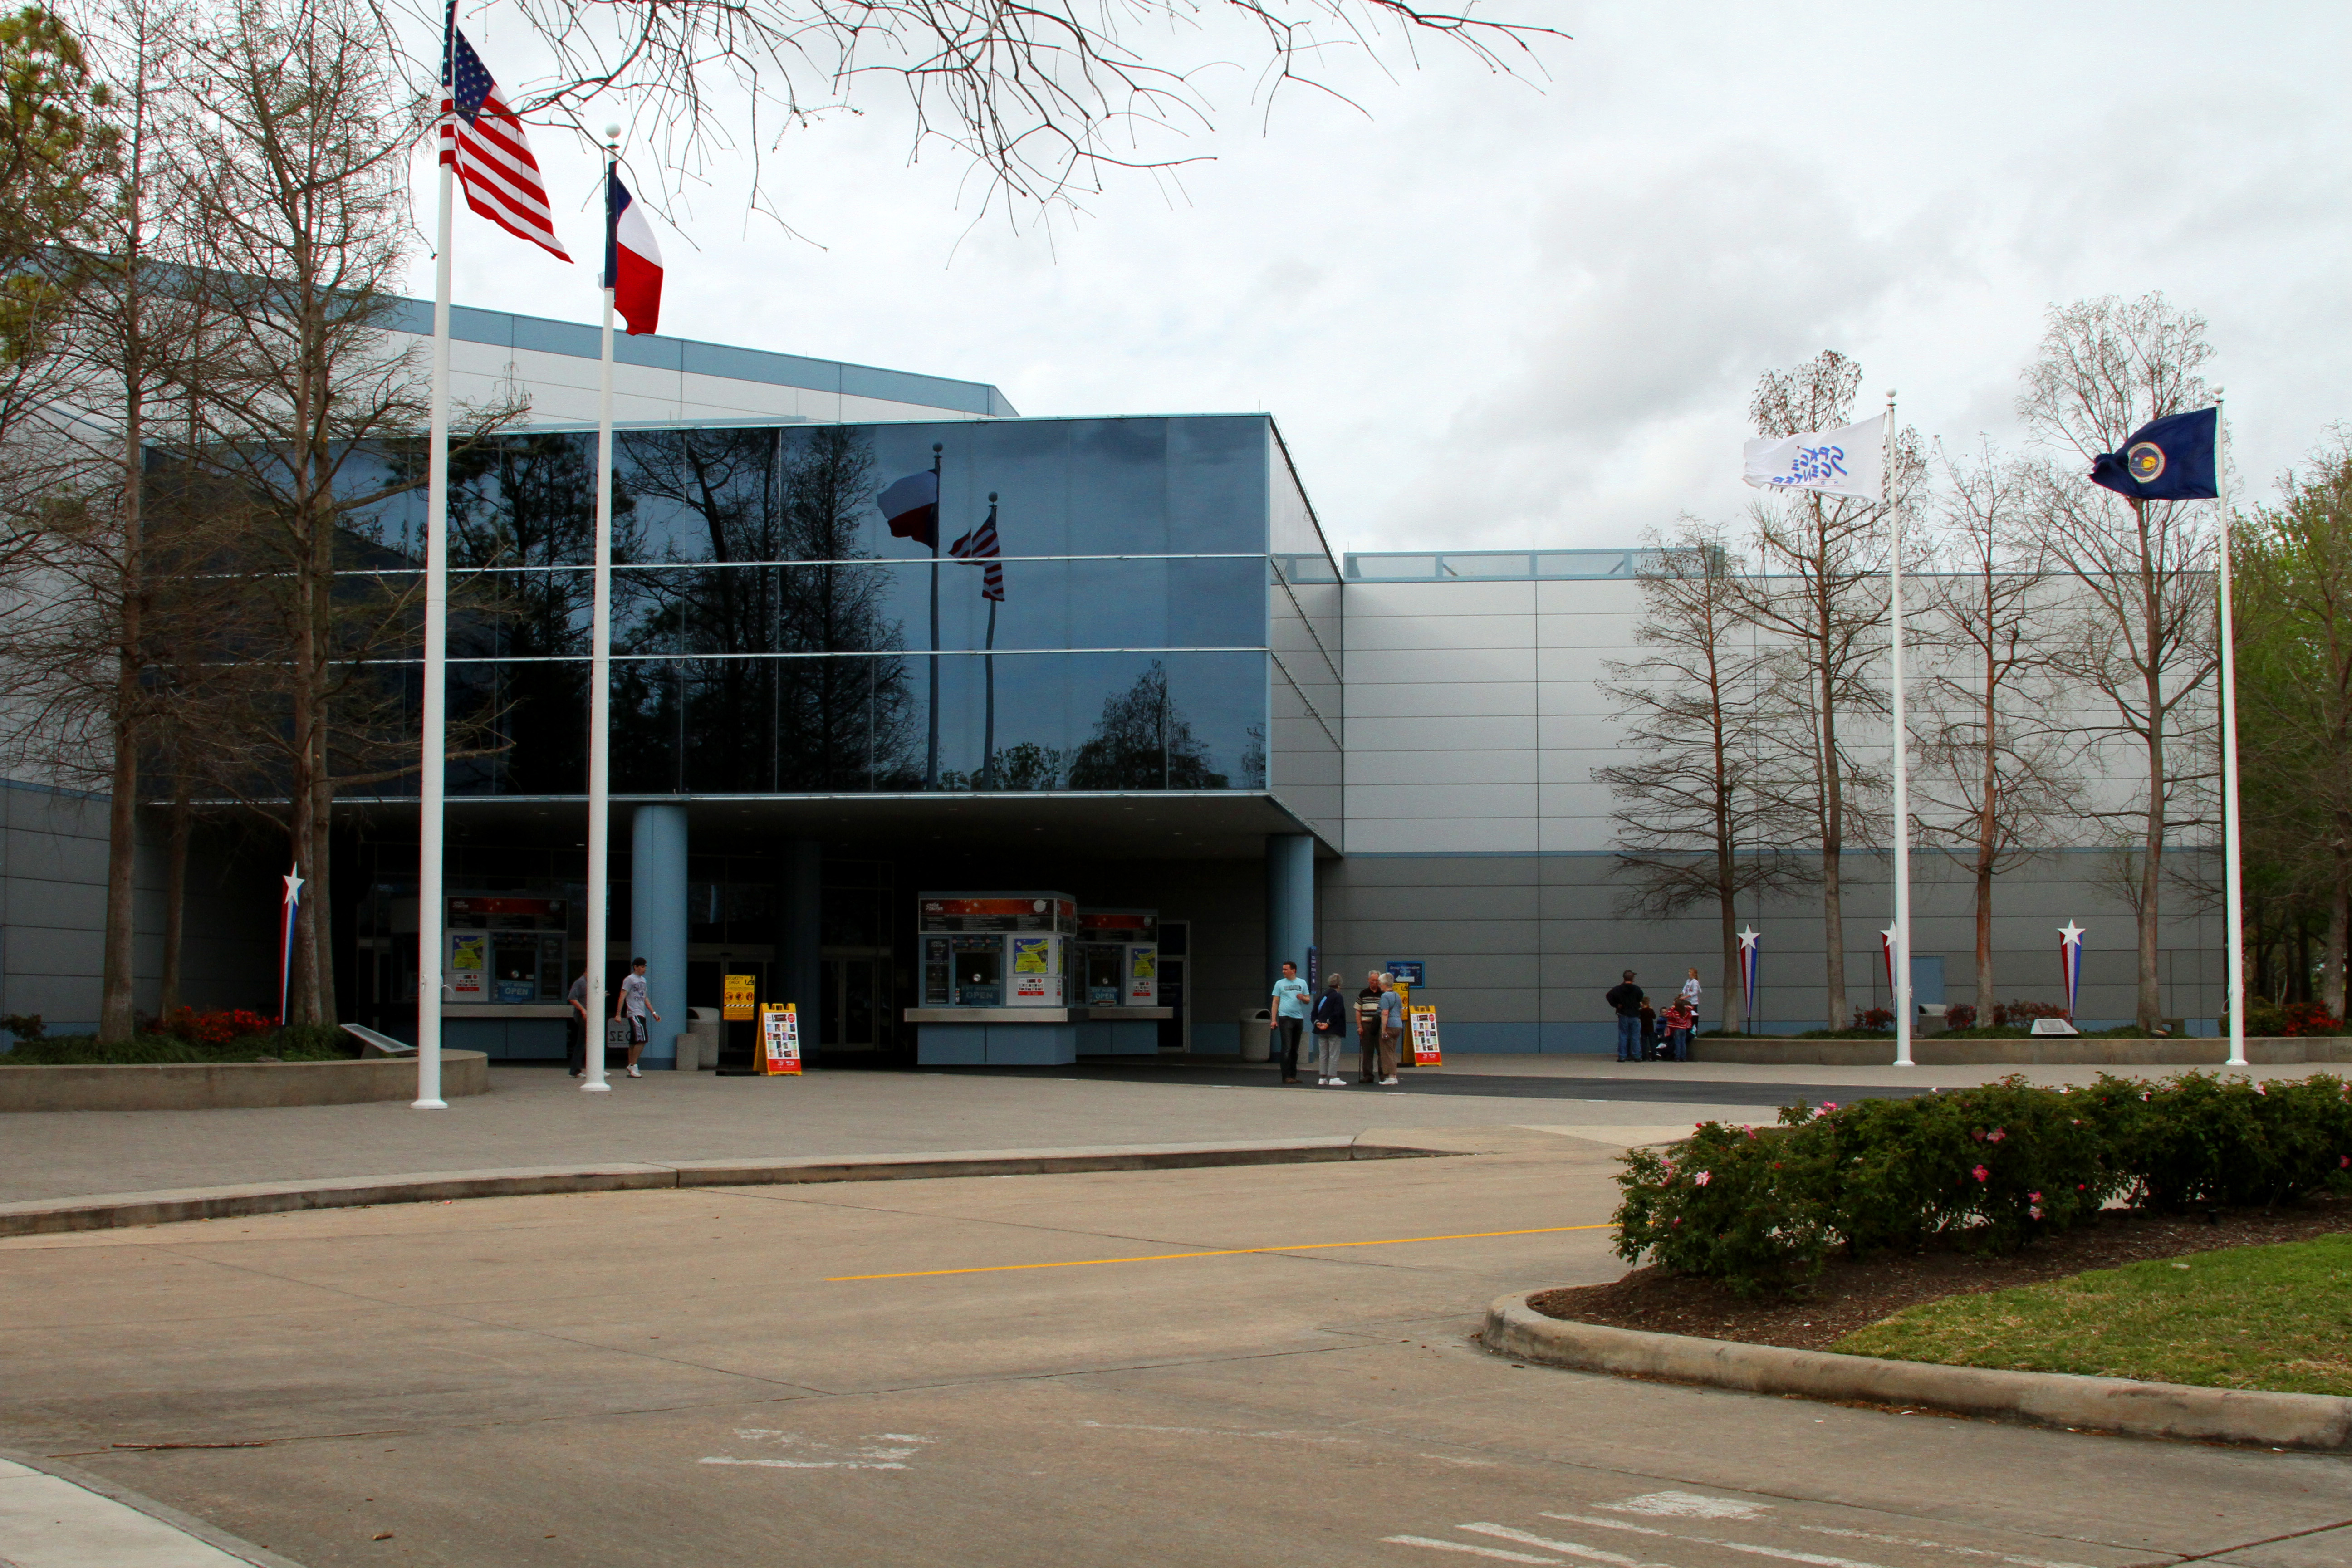 NASA Houston Space Center Building - Pics about space